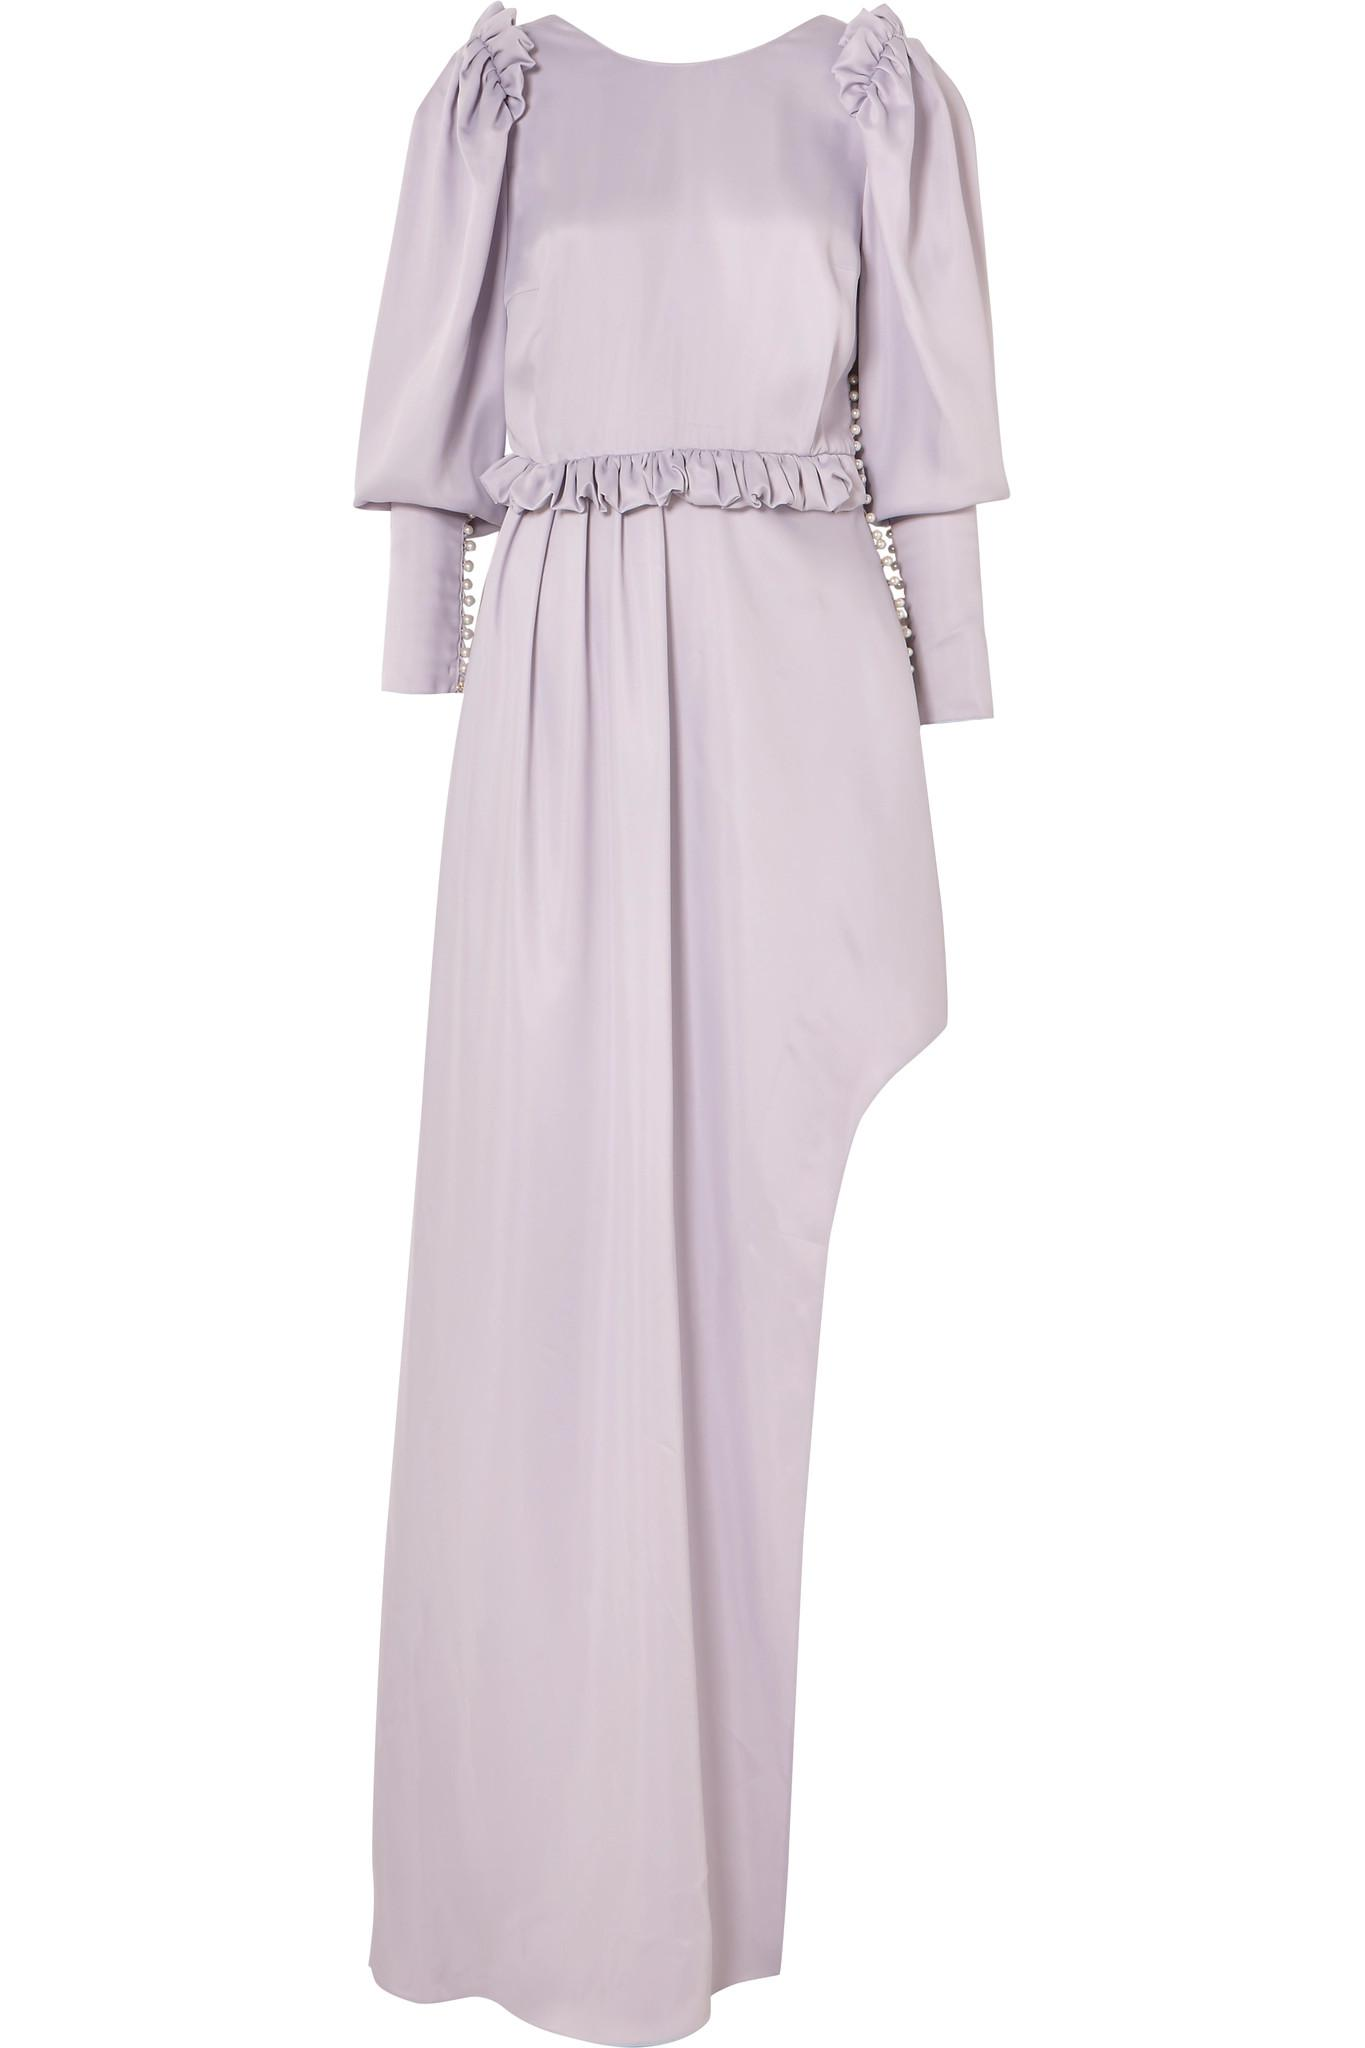 Playa Ruffle-trimmed Embellished Satin Midi Dress - Lilac Magda Butrym Original Cheap Price Clearance Latest Sneakernews For Sale Outlet Classic b1WuuBGM75